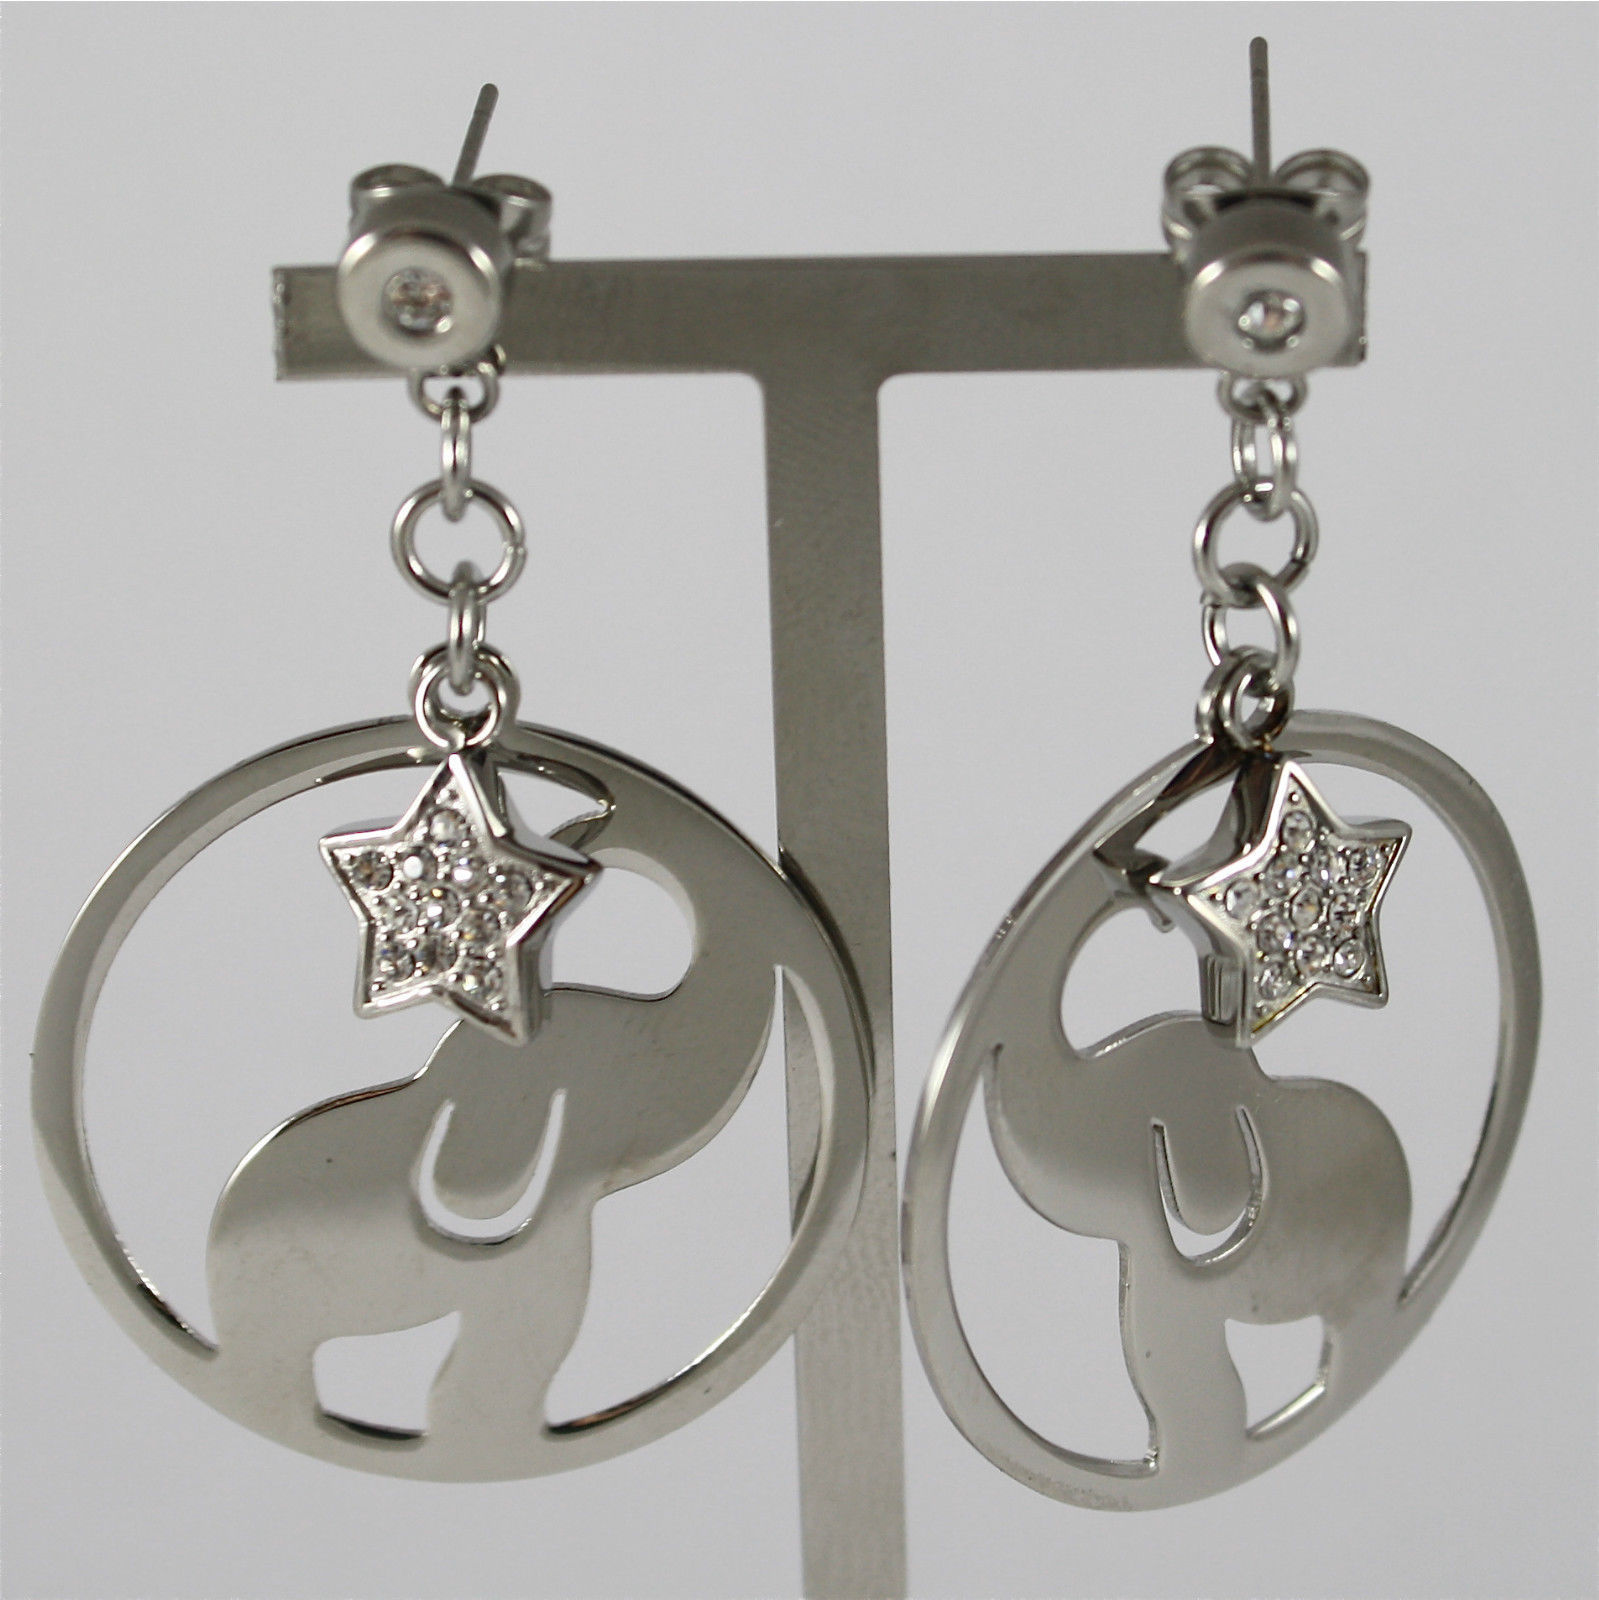 S'AGAPO' EARRINGS, 316L STEEL, ELEPHANT AND STAR, FACETED CRYSTALS.